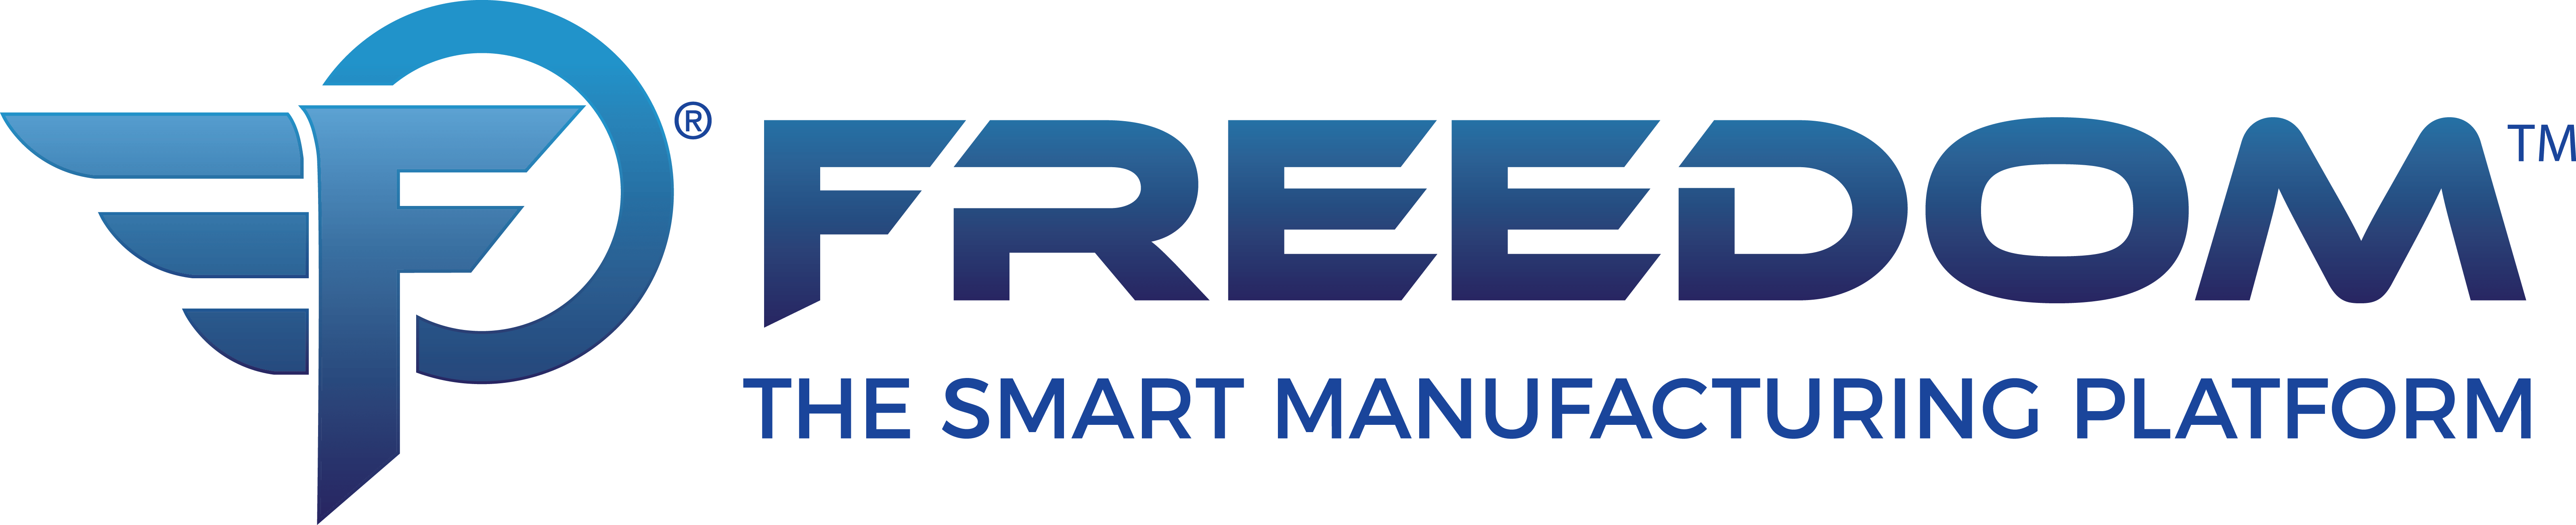 The Smart Manufacturing Platform | Freedom™